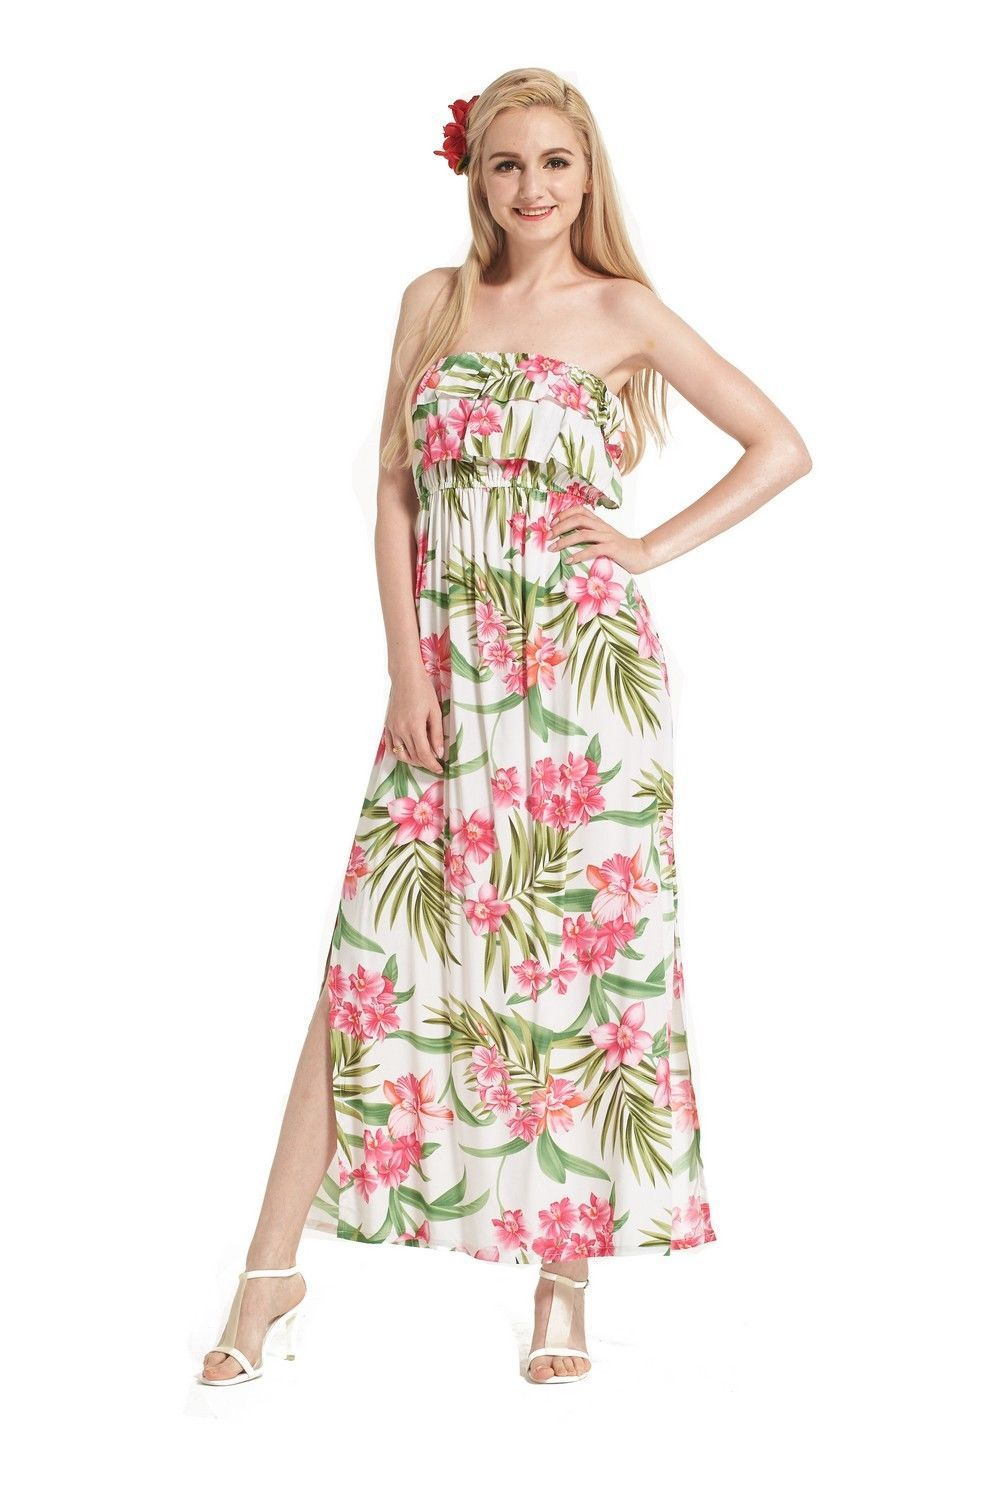 76d224221ad2 Made In Hawaii Women s Hawaiian Luau Off Shoulder Dress Ruffle White Floral